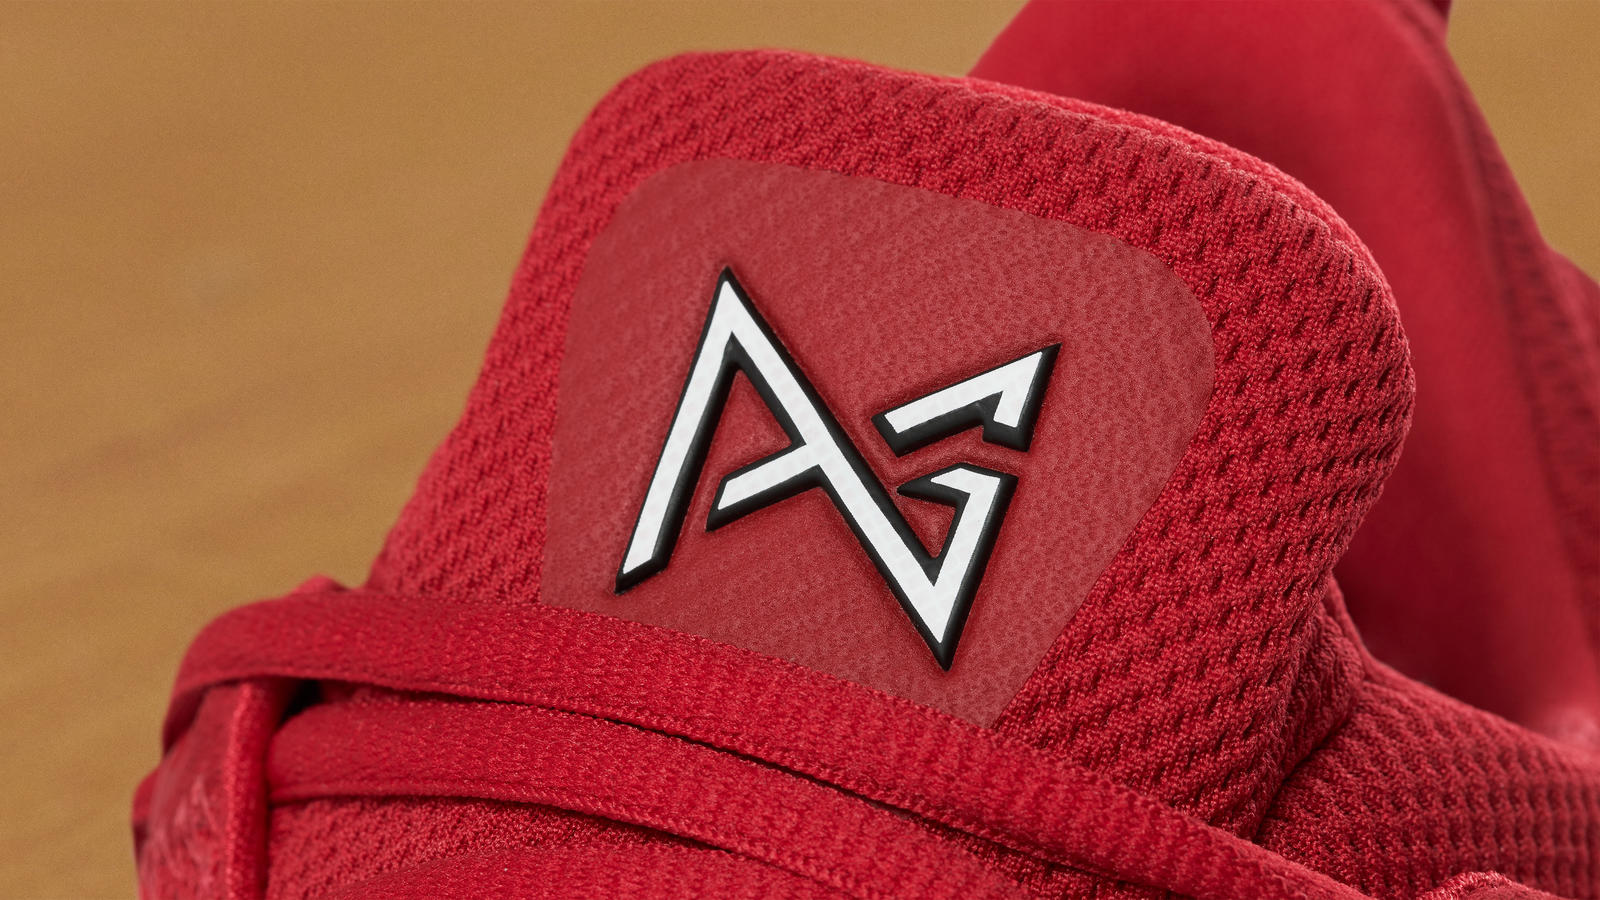 Pg1 red 1 hd 1600